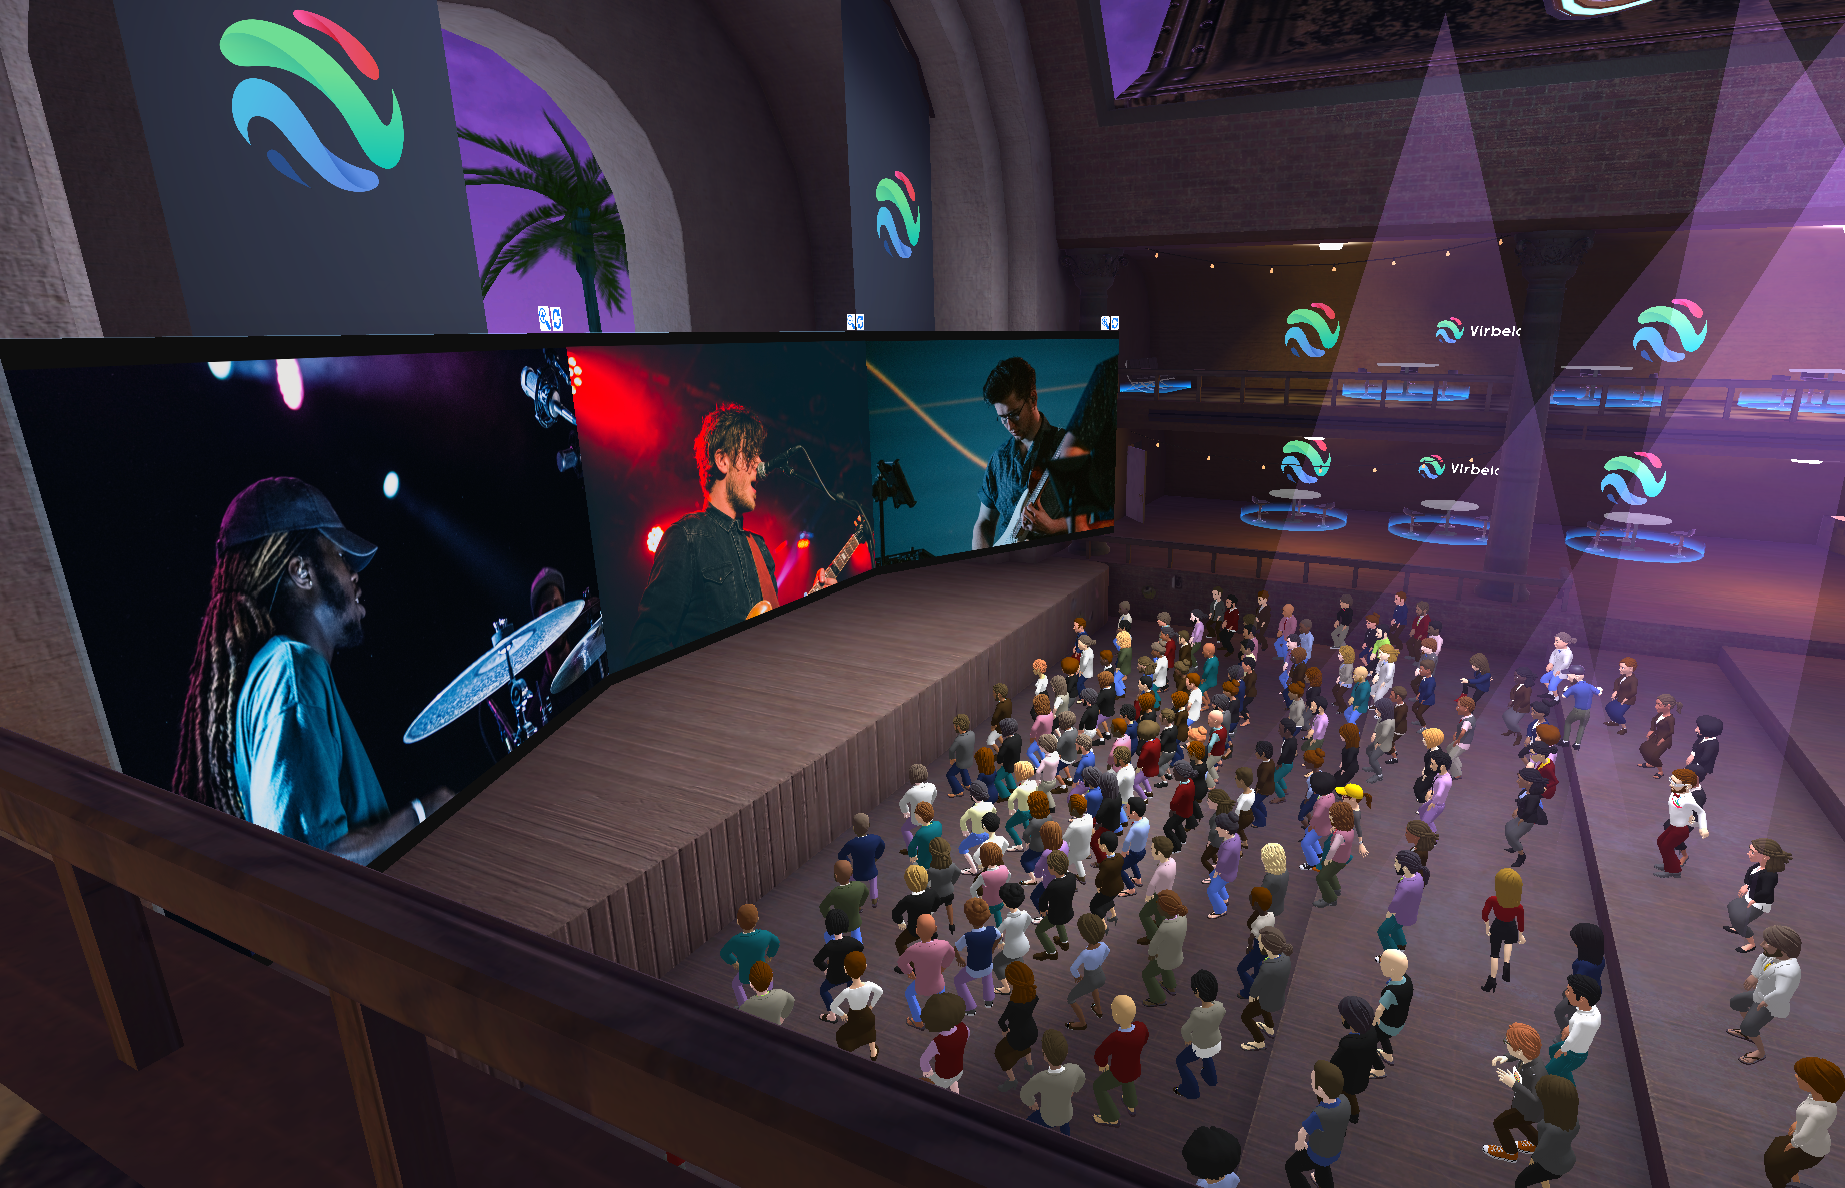 Virbela Launches New Virtual Entertainment Venue for Live Music and Events